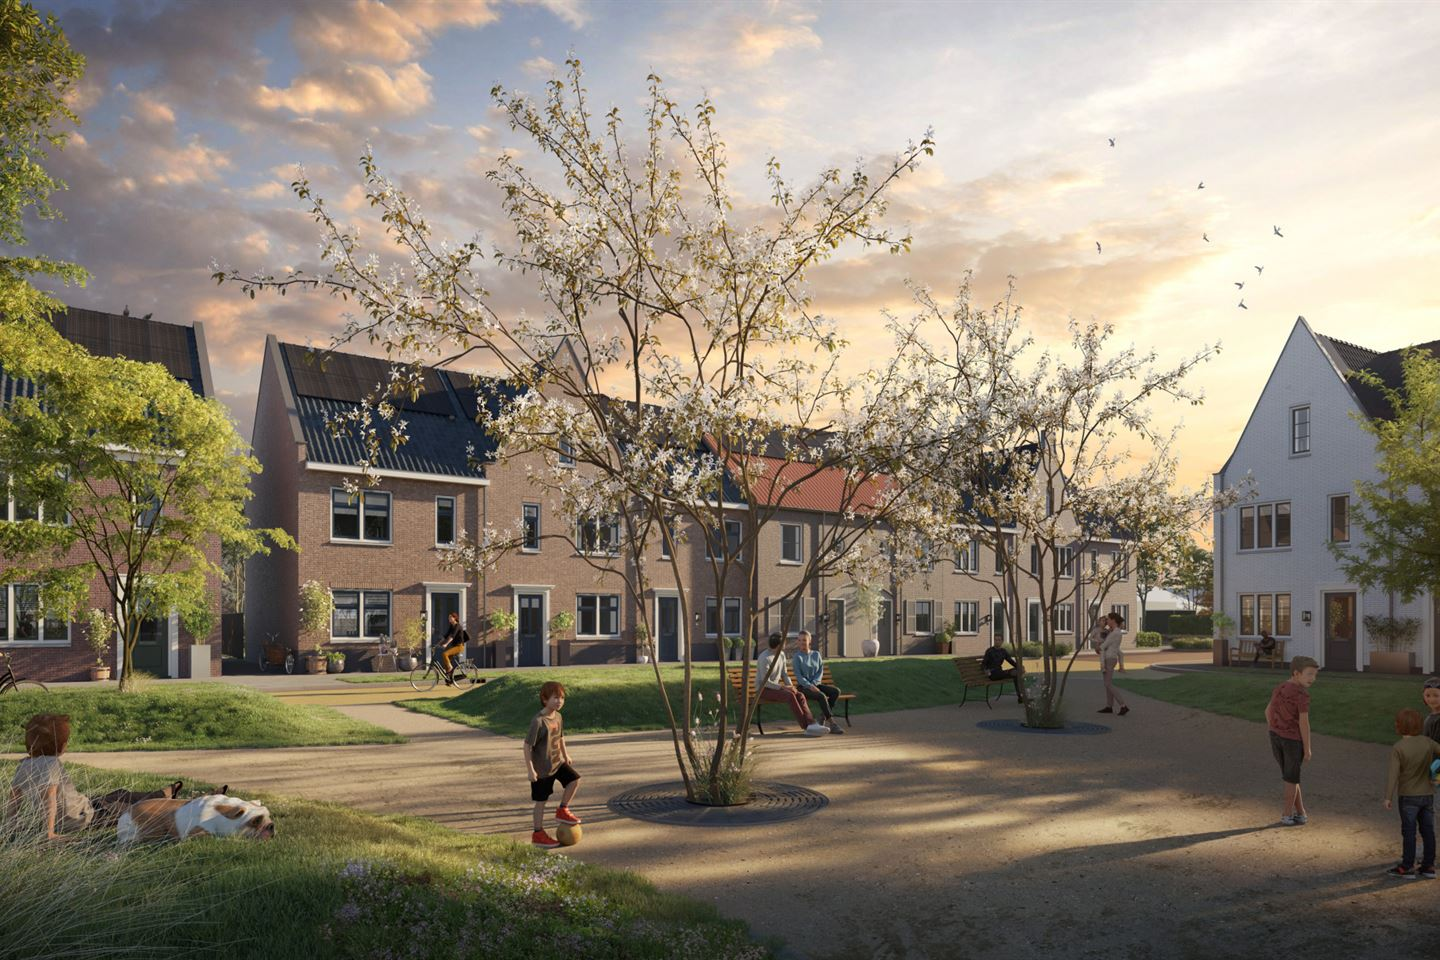 View photo 1 of Rijwoning Brink (Bouwnr. 24)